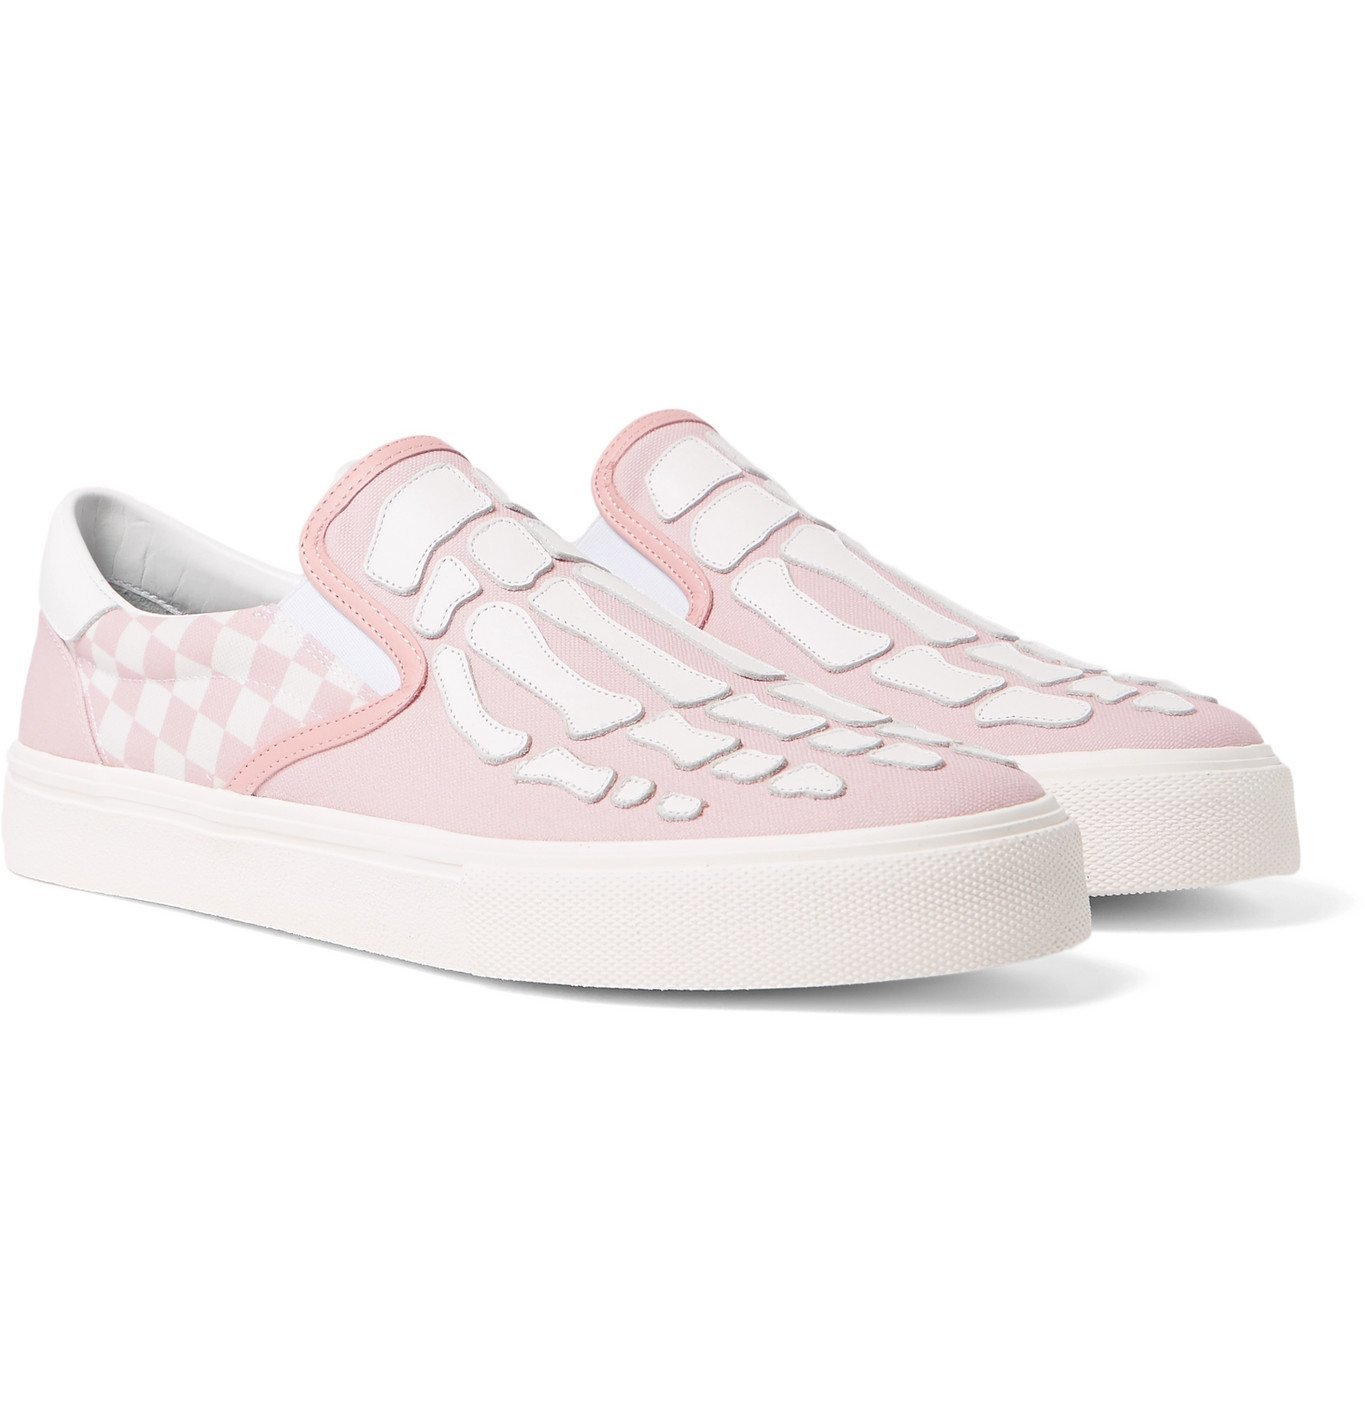 Photo: AMIRI - Skel Toe Leather-Appliquéd Checked Canvas Slip-On Sneakers - Pink